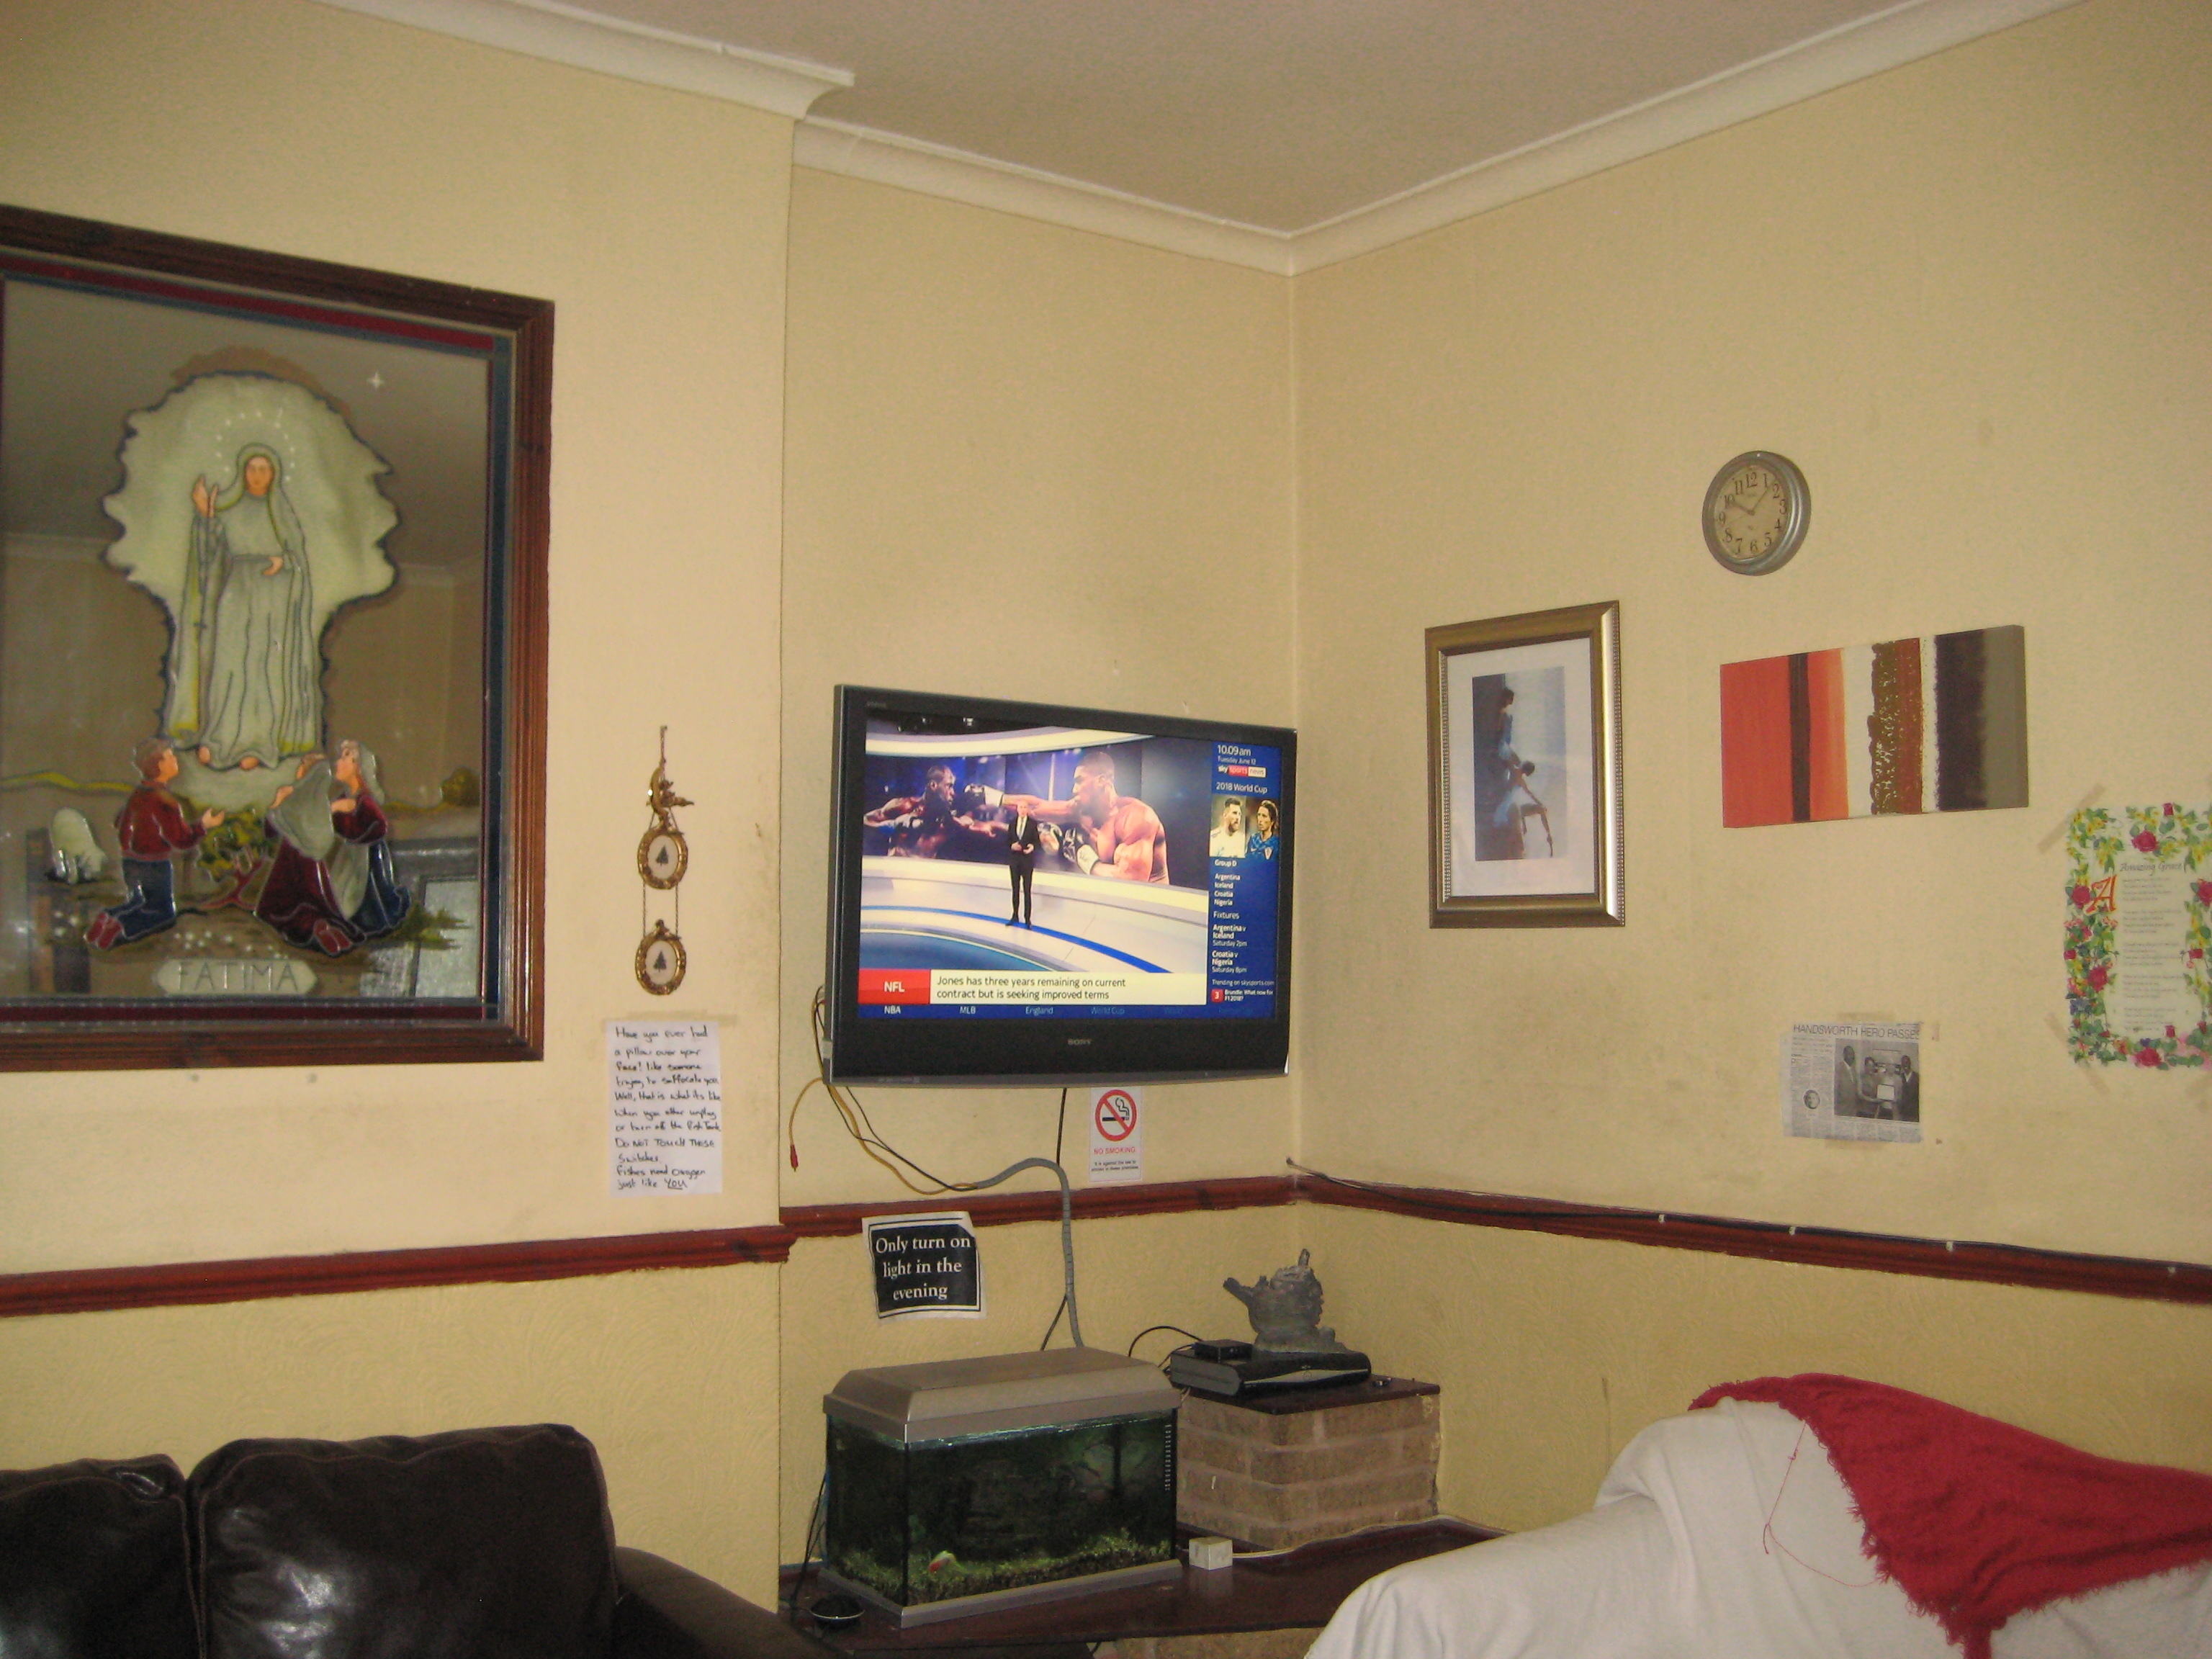 Before redecoration of living area at Community RePaint Sandwell and Soho.